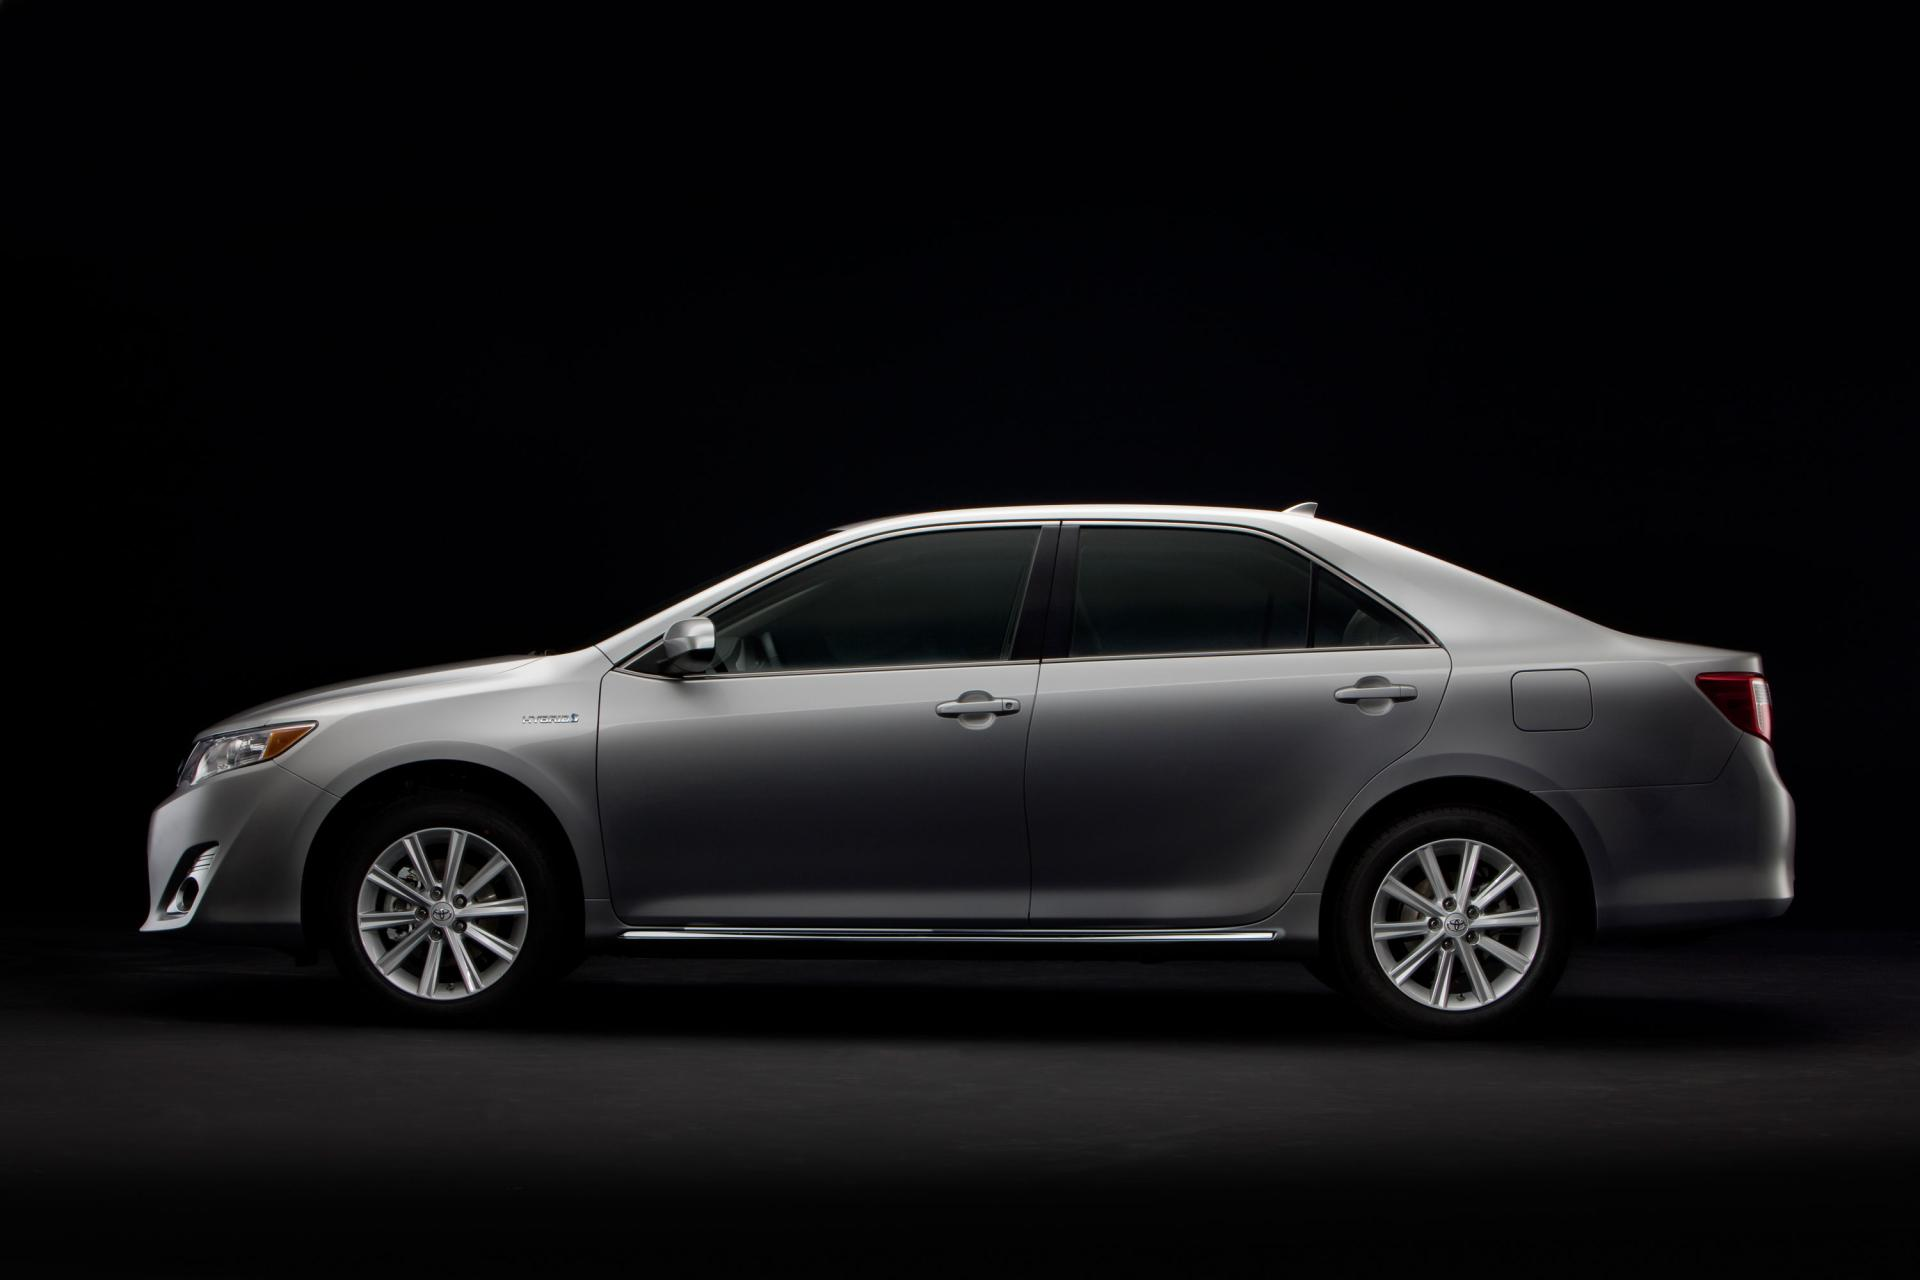 2012 Toyota Camry Hybrid News And Information